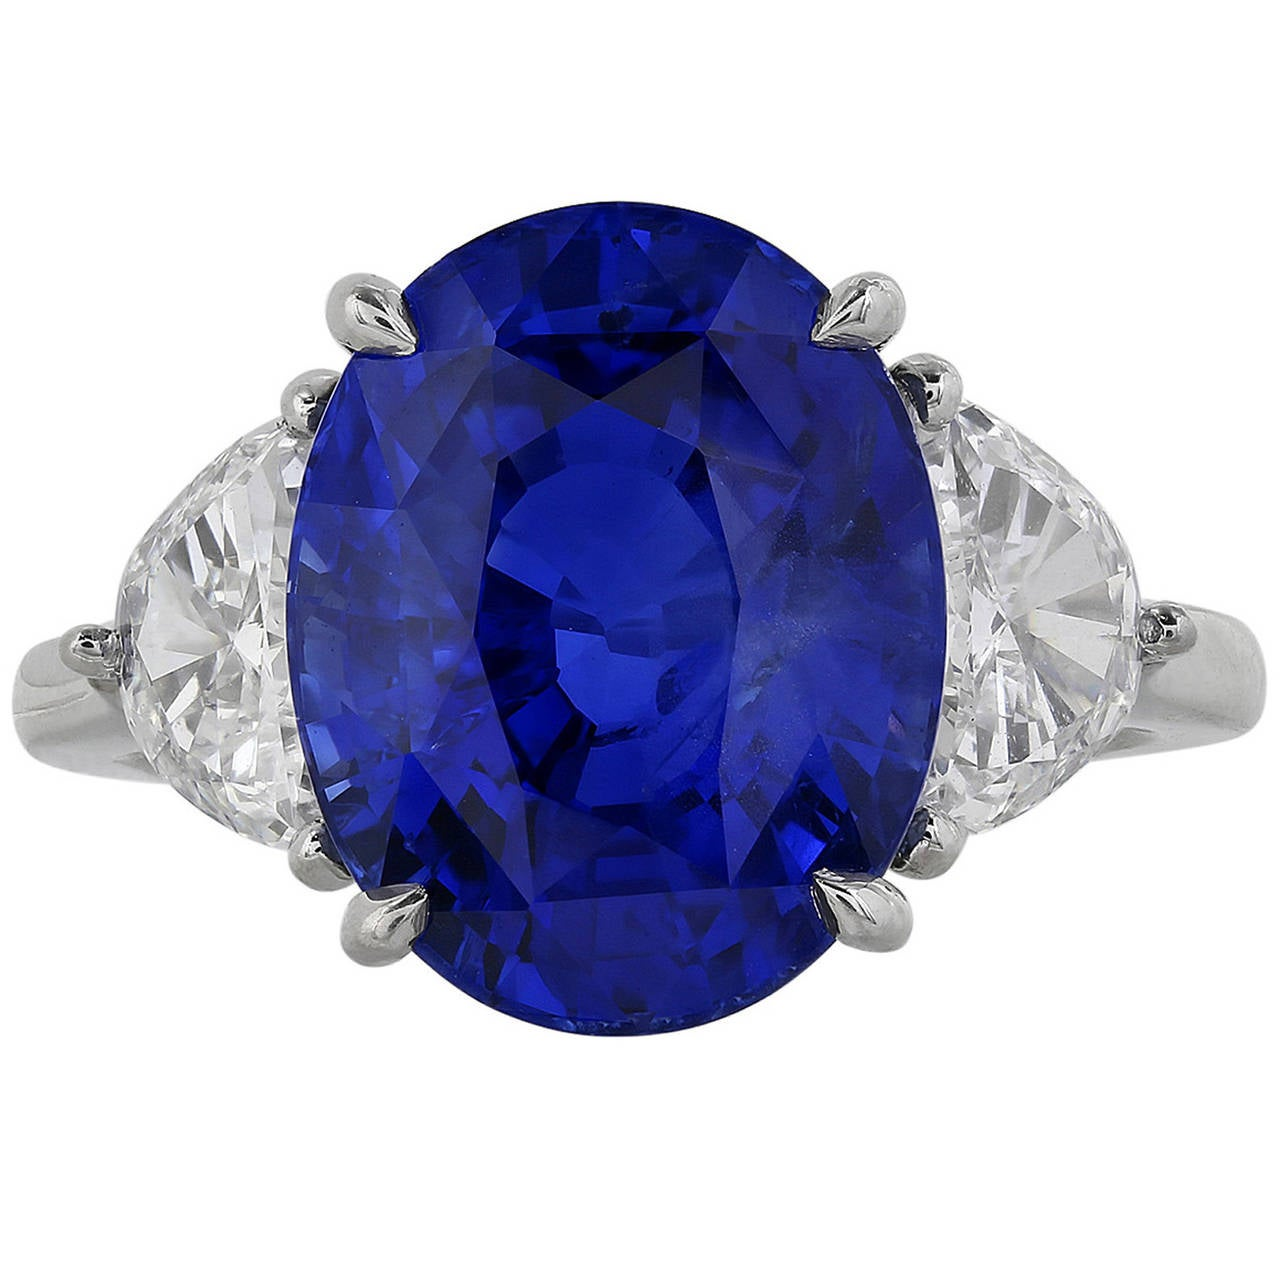 10.08 Carat Unheated Sapphire Diamond Platinum Three Stone Engagement Ring